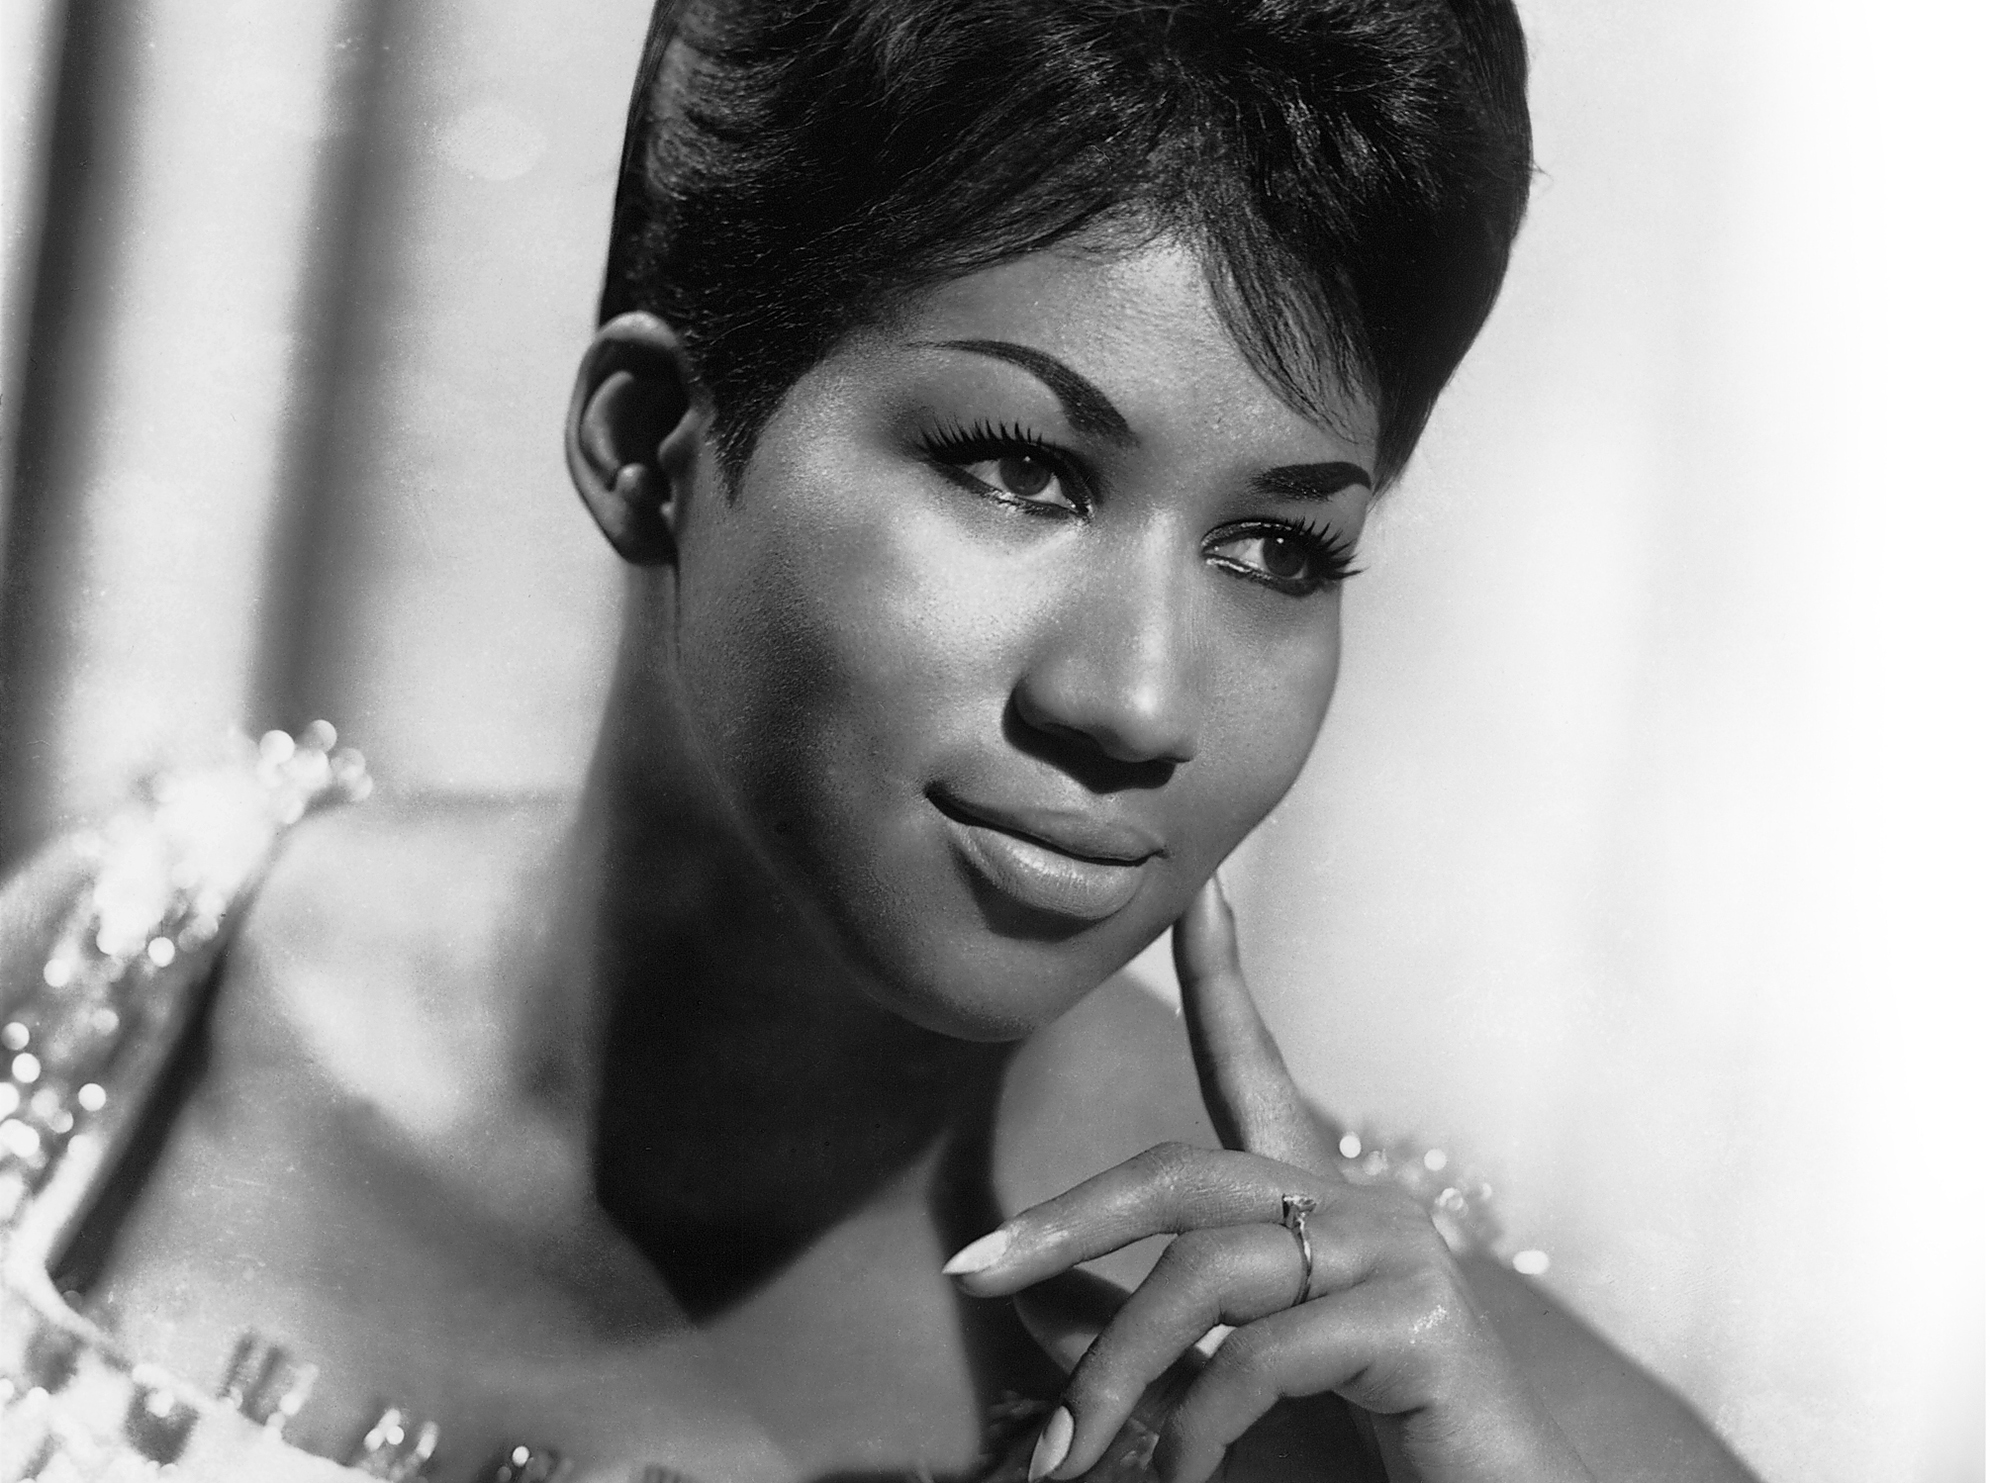 Queen of soul Aretha Franklin is 'gravely ill', according to reports